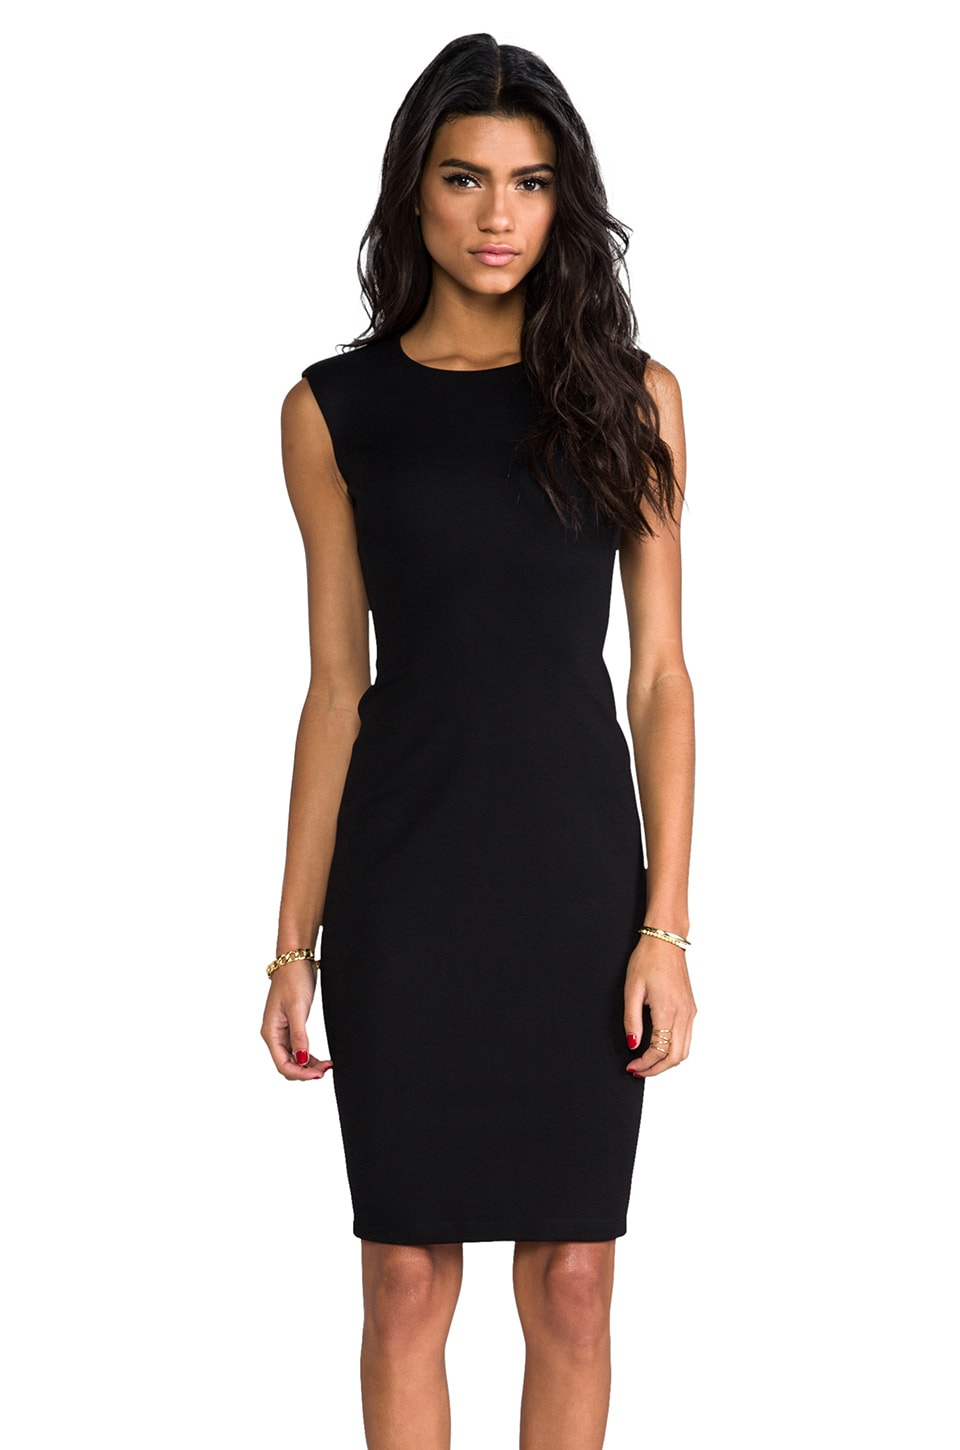 Bailey 44 Dark Net Body Con Dress in Black